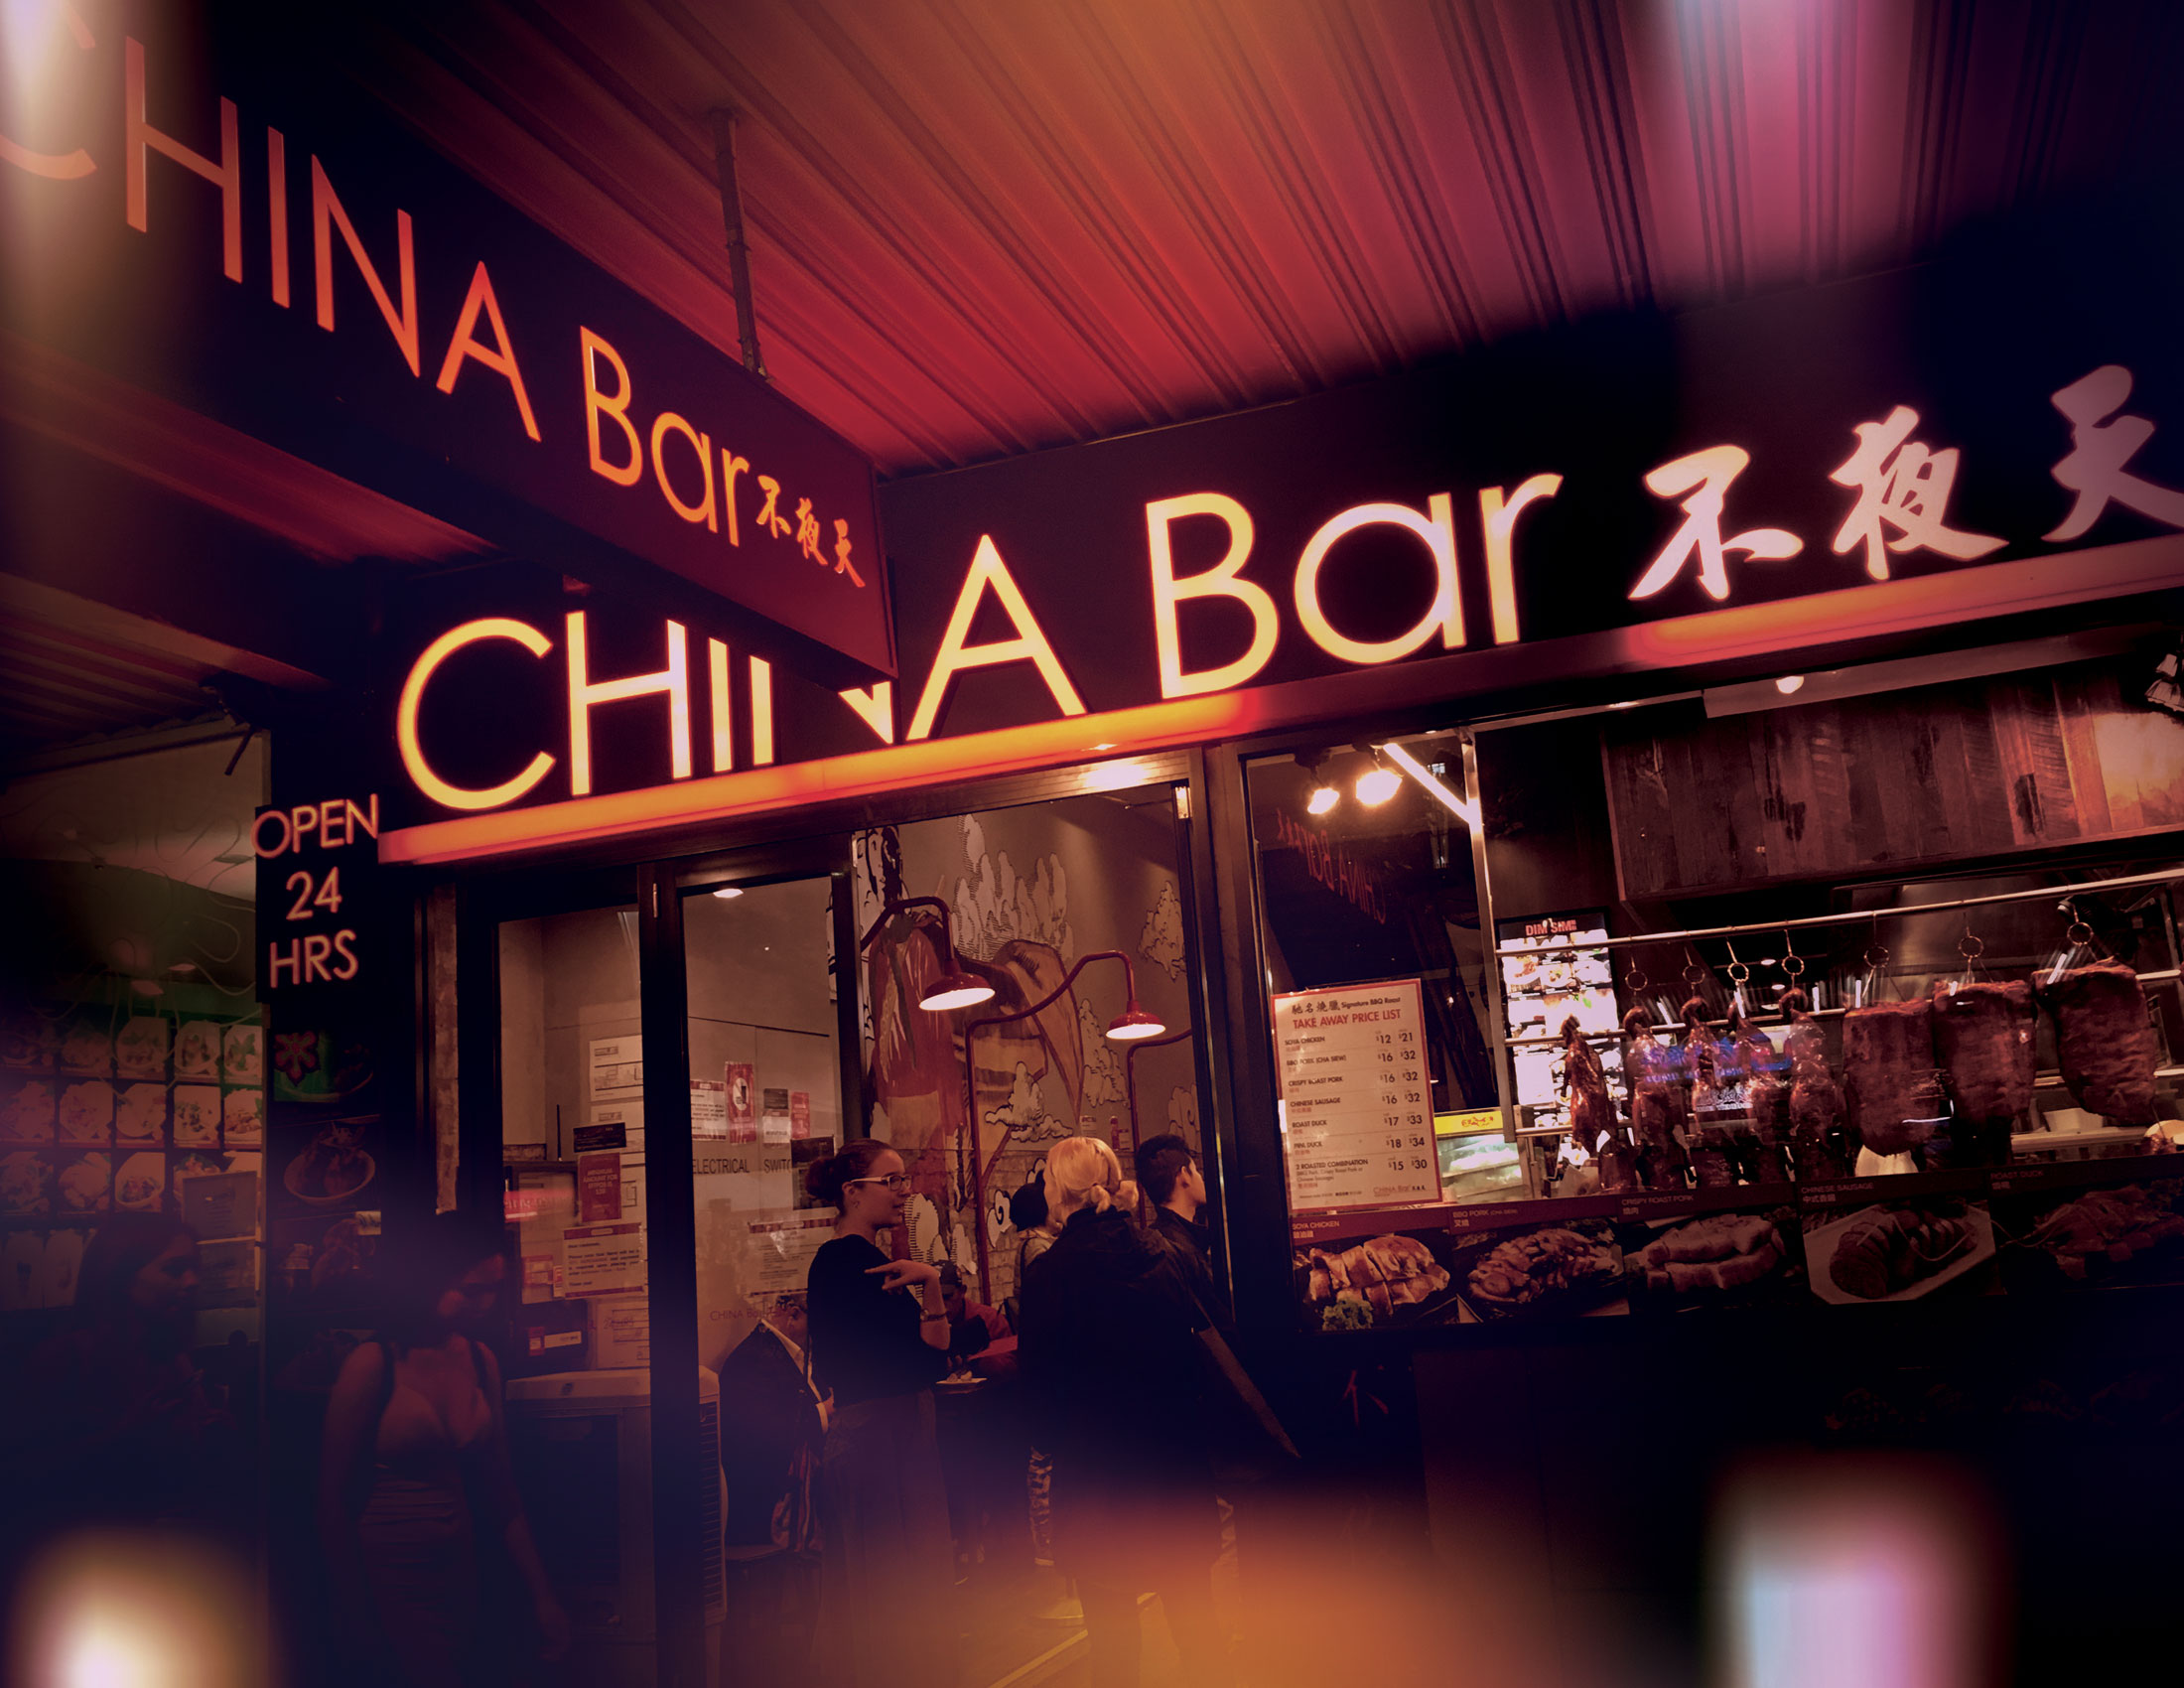 restaurant_chinabar_01-hd